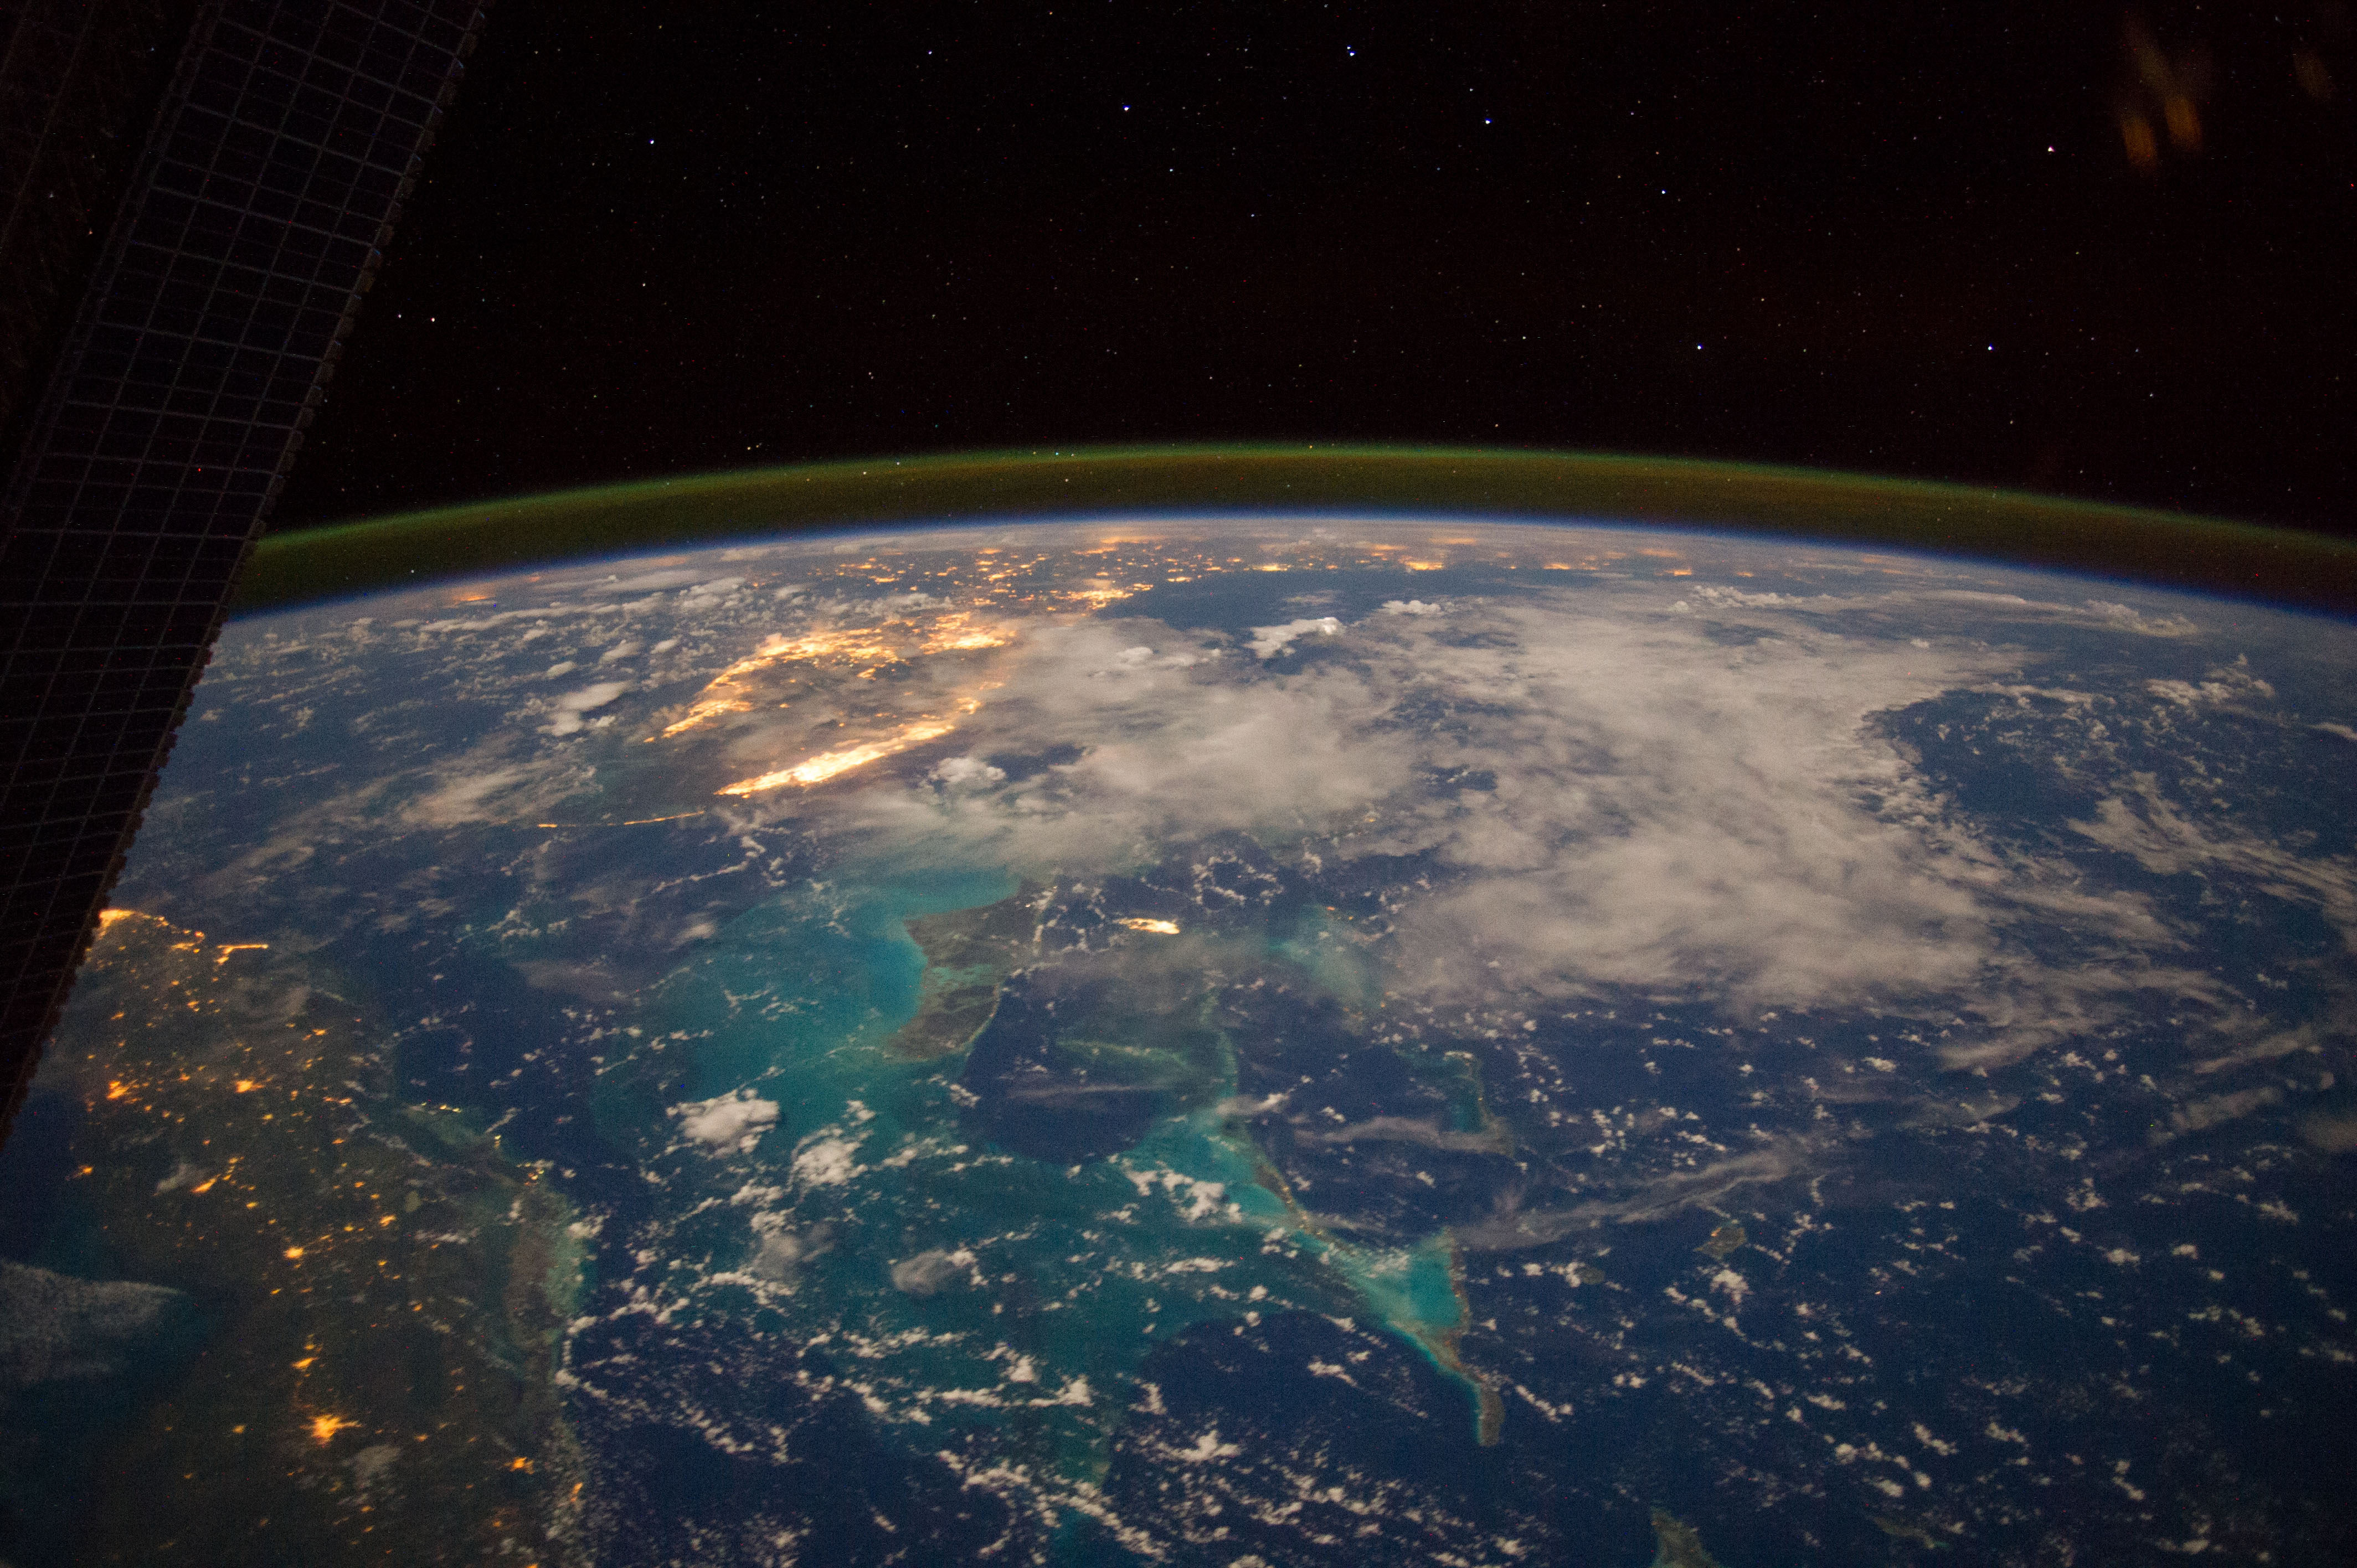 Bahamas: The view from the ISS.